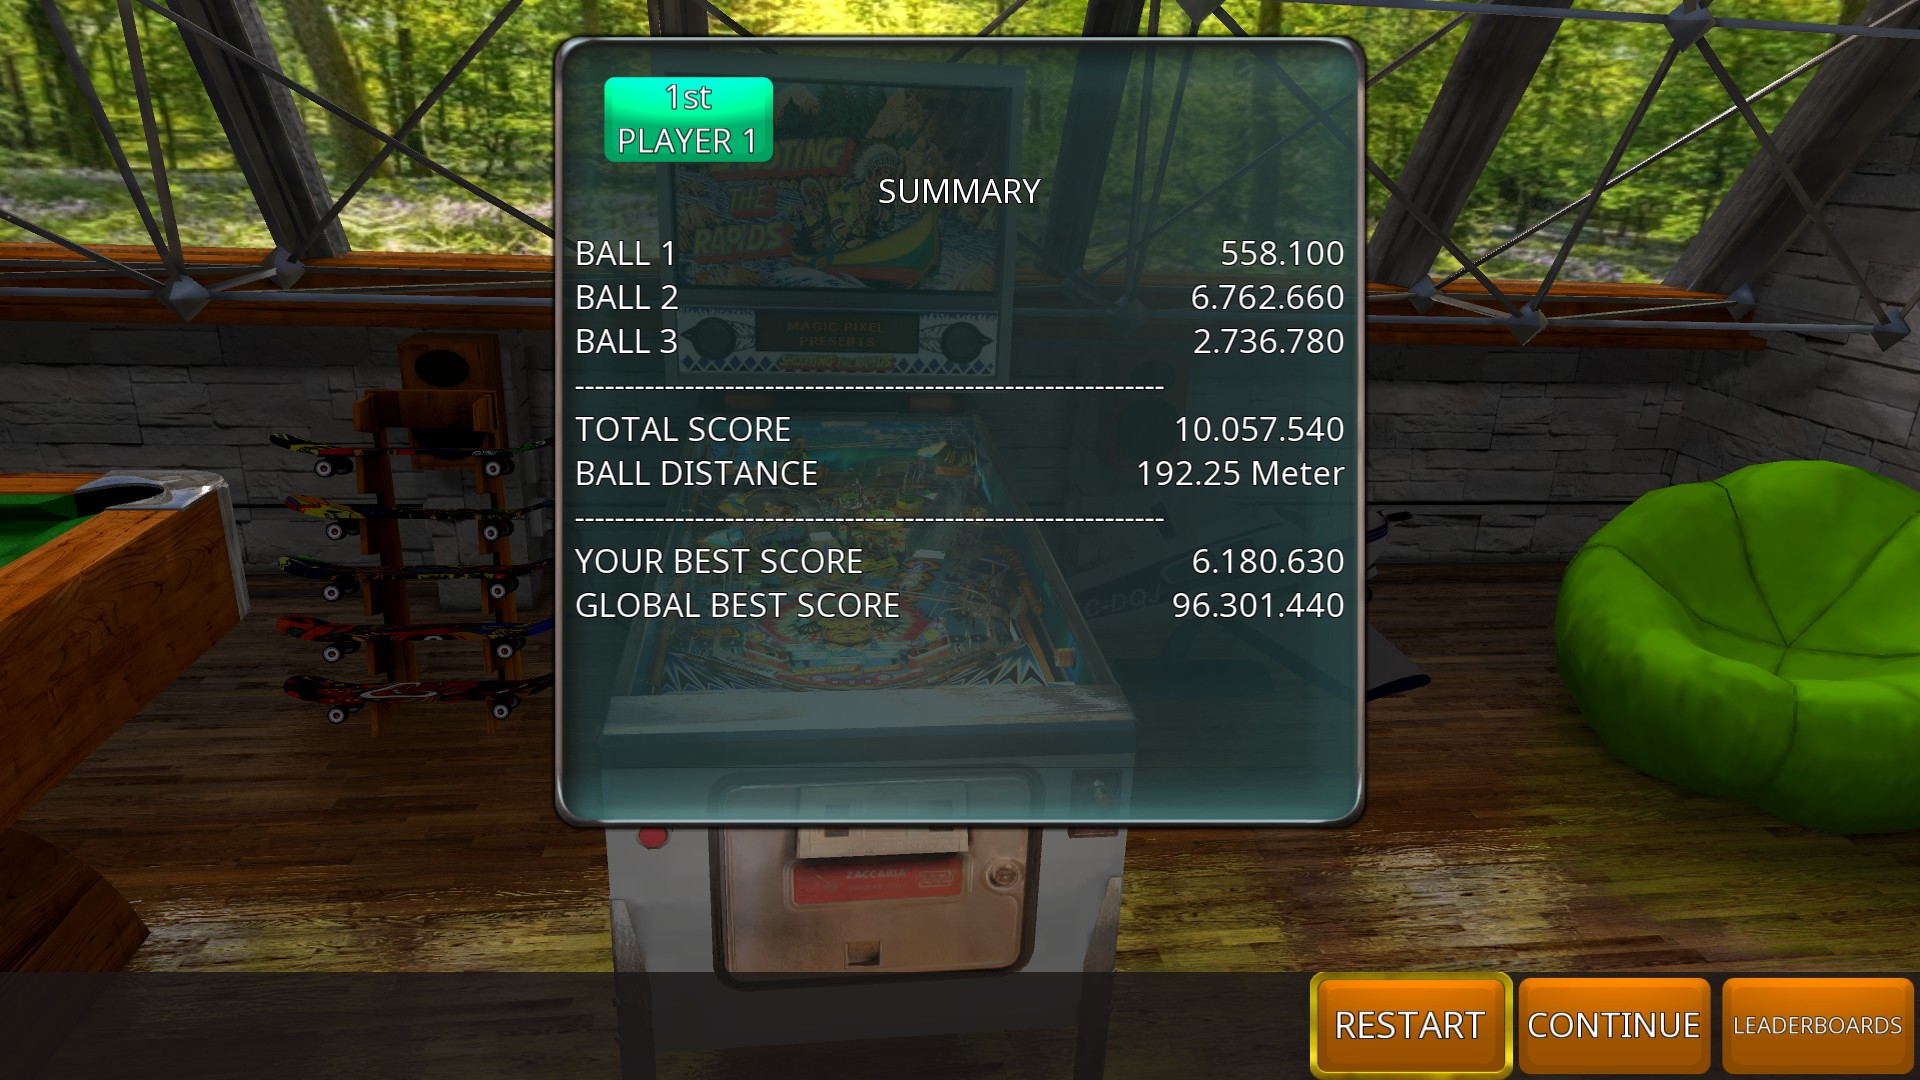 GTibel: Zaccaria Pinball: Shooting The Rapids 2016 [3 balls] (PC) 10,057,640 points on 2018-09-02 10:20:15